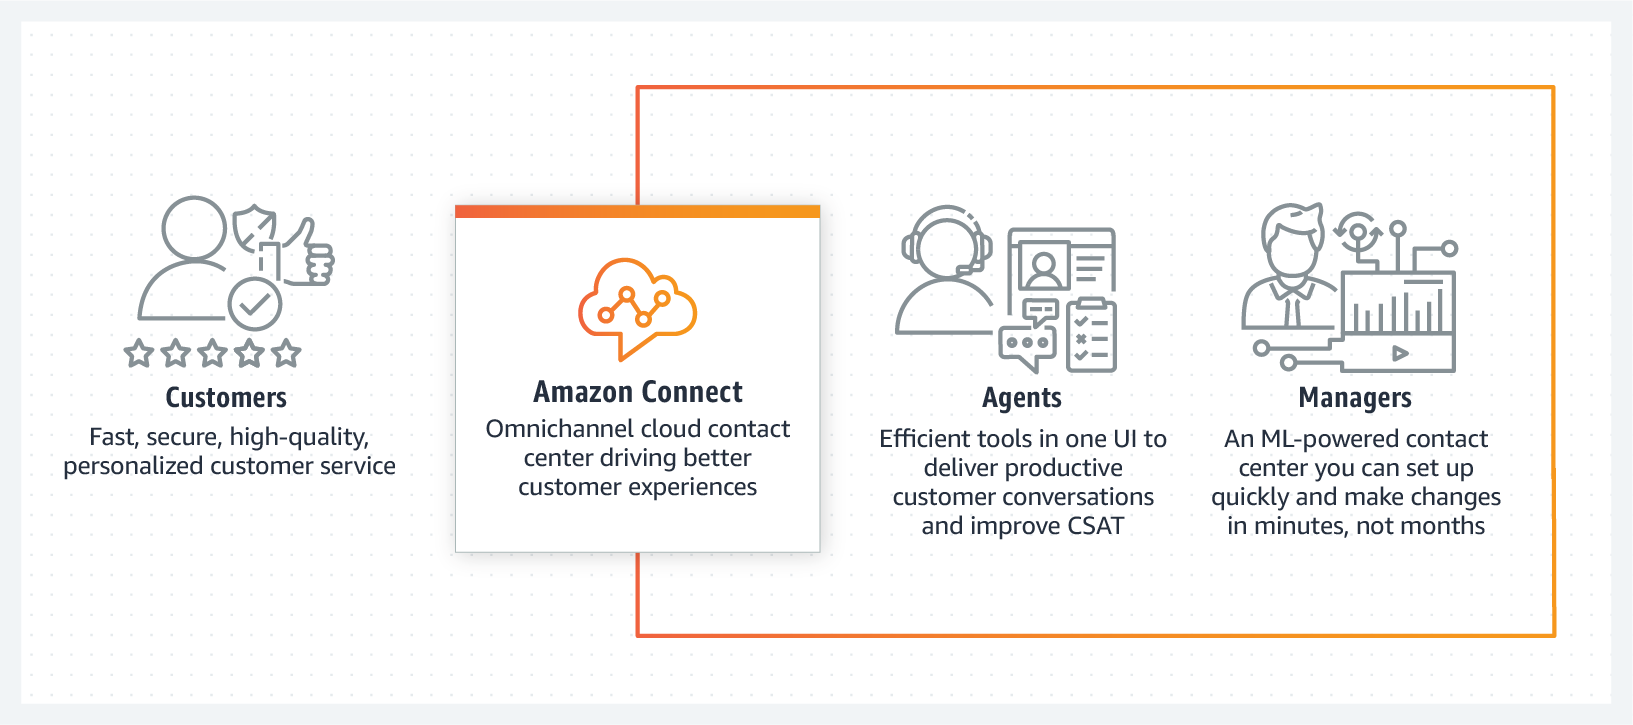 HIW-Diagram_Amazon-Connect-Innovations@2X